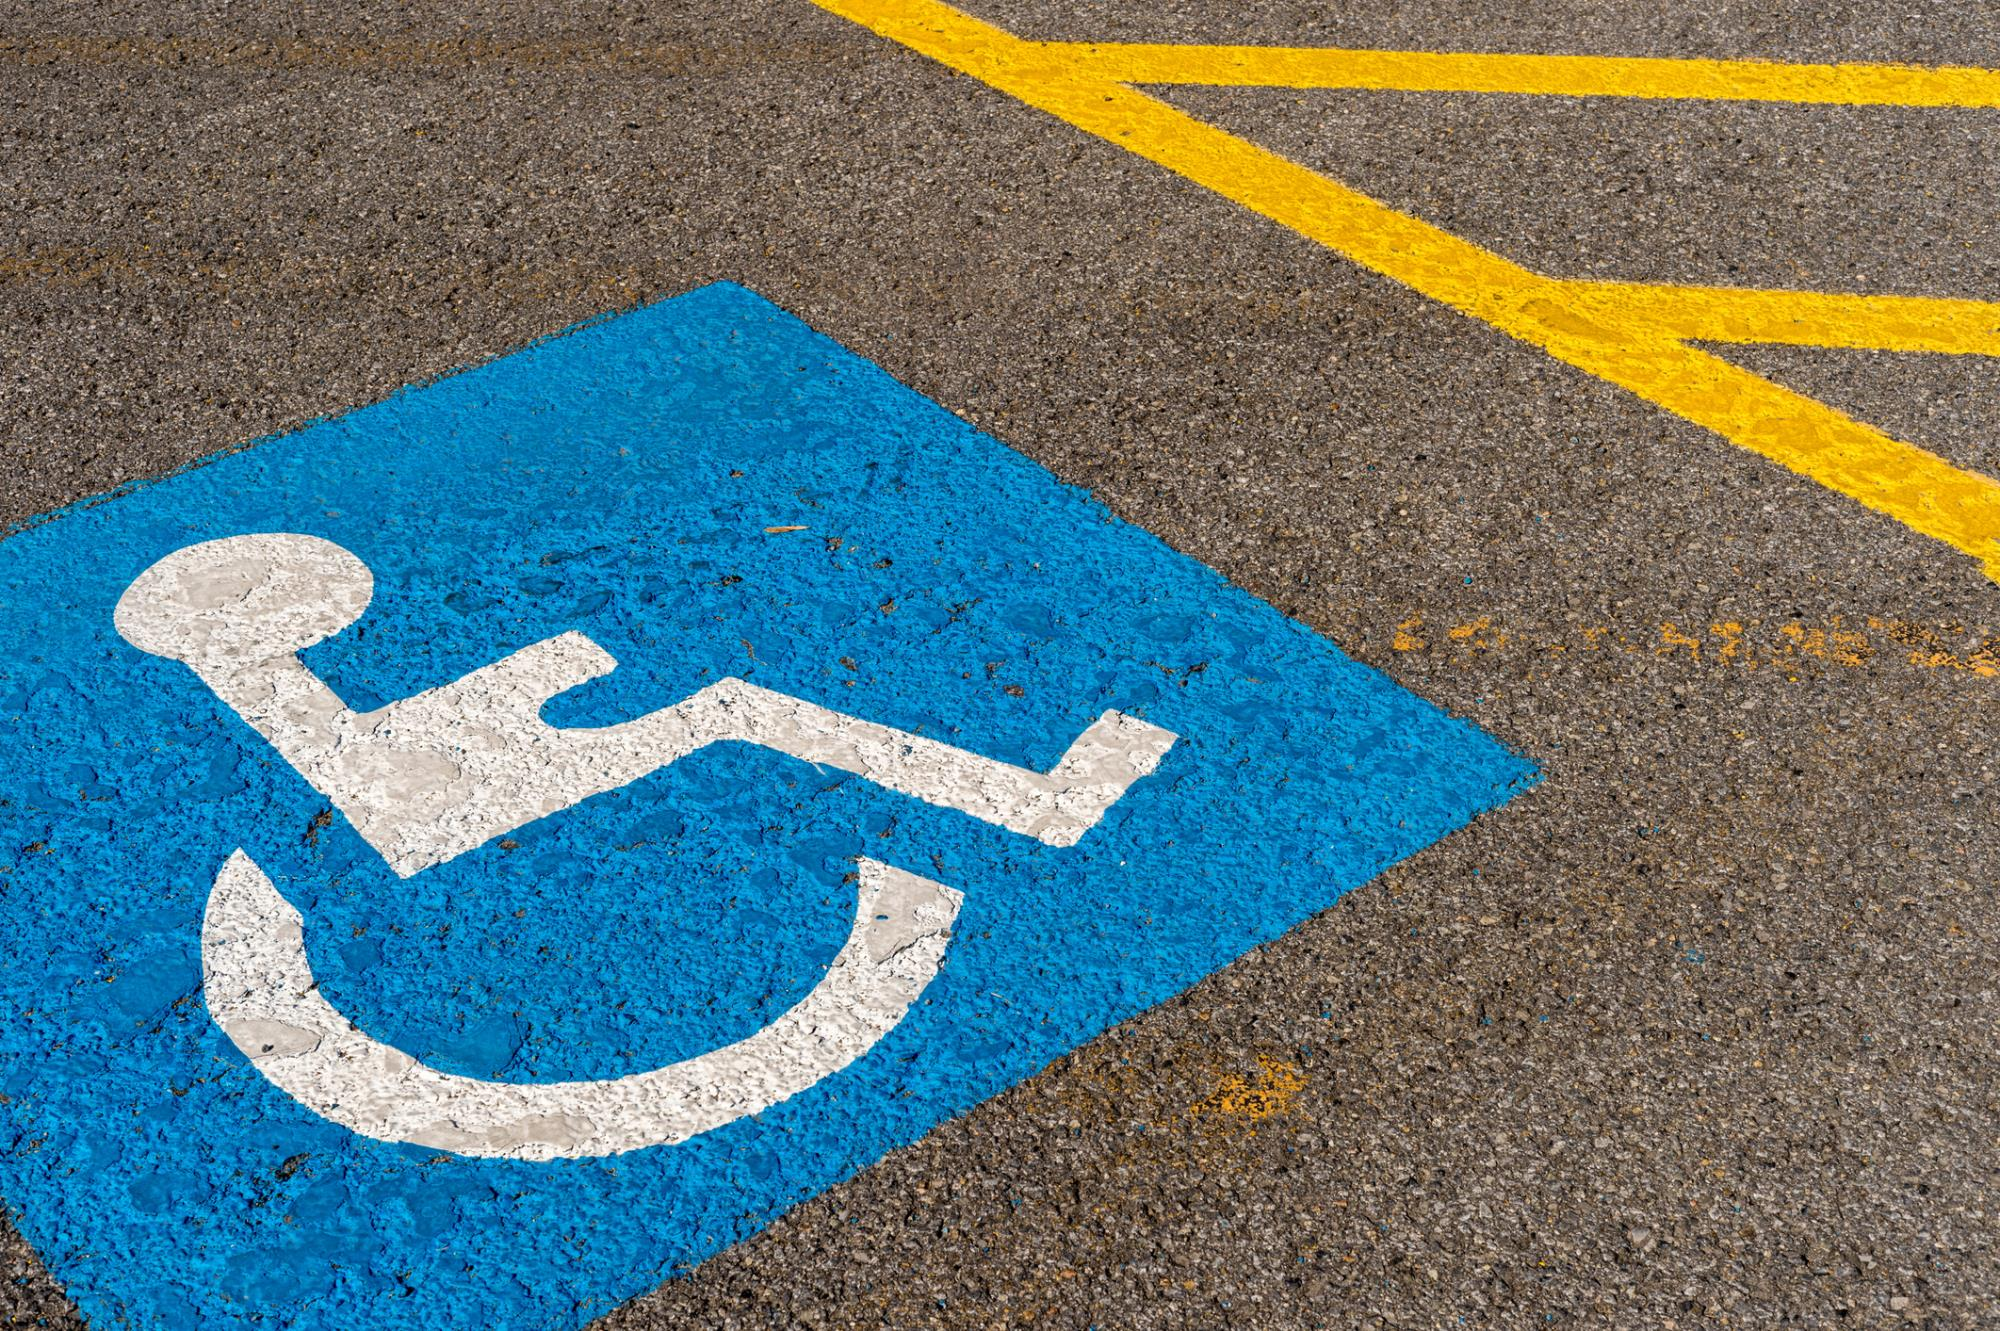 Handicap parking, Clearwater handicap, ADA Parking, Beach ADA Parking